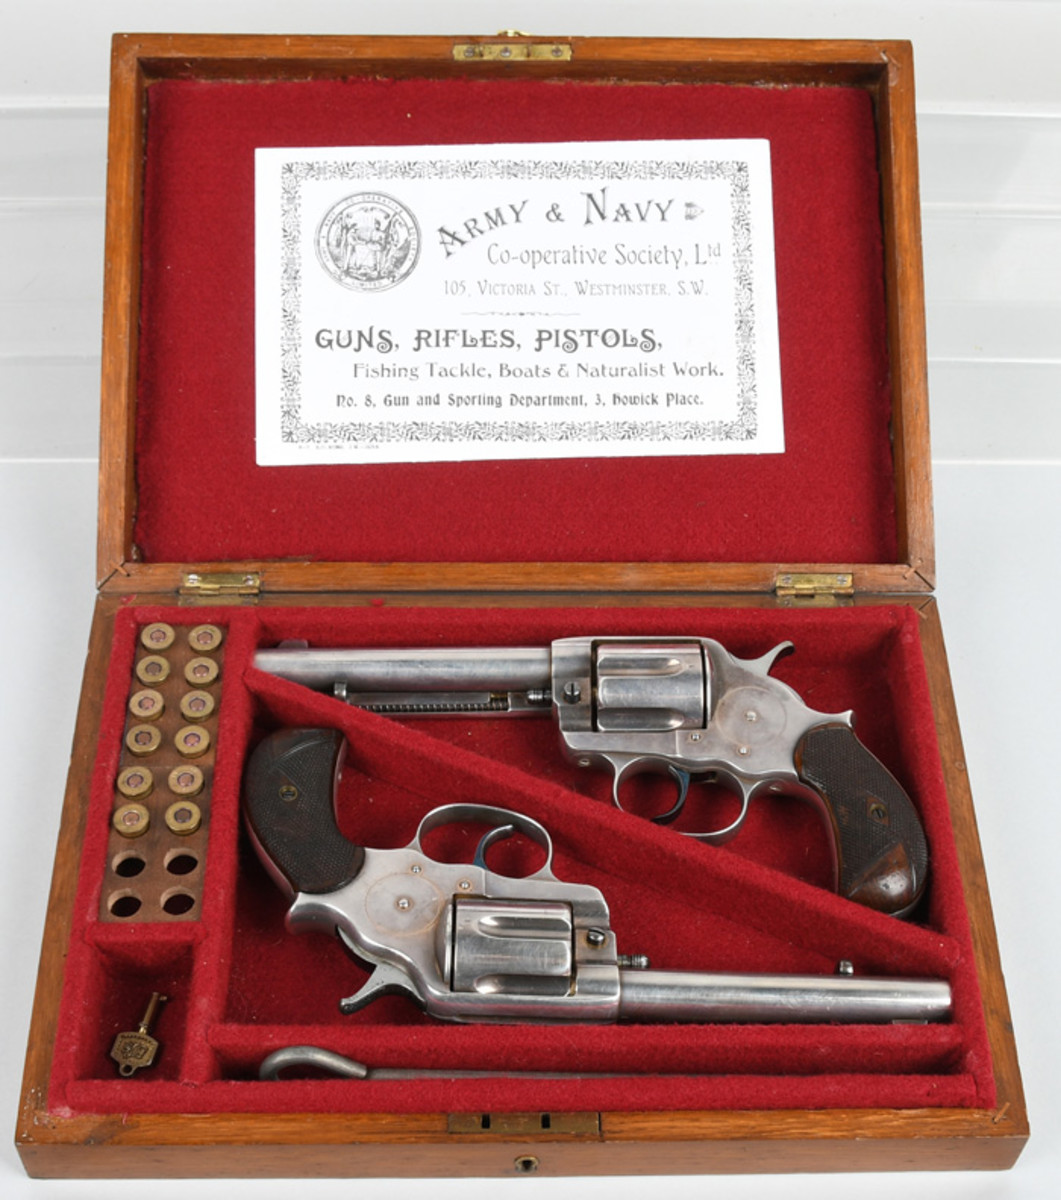 English silver-plated Colt Model 1878 double-action revolvers, British proofs on cylinders, London barrel address on both, made in 1882 and 1885, respectively; the latter sold new to a British Army officer.